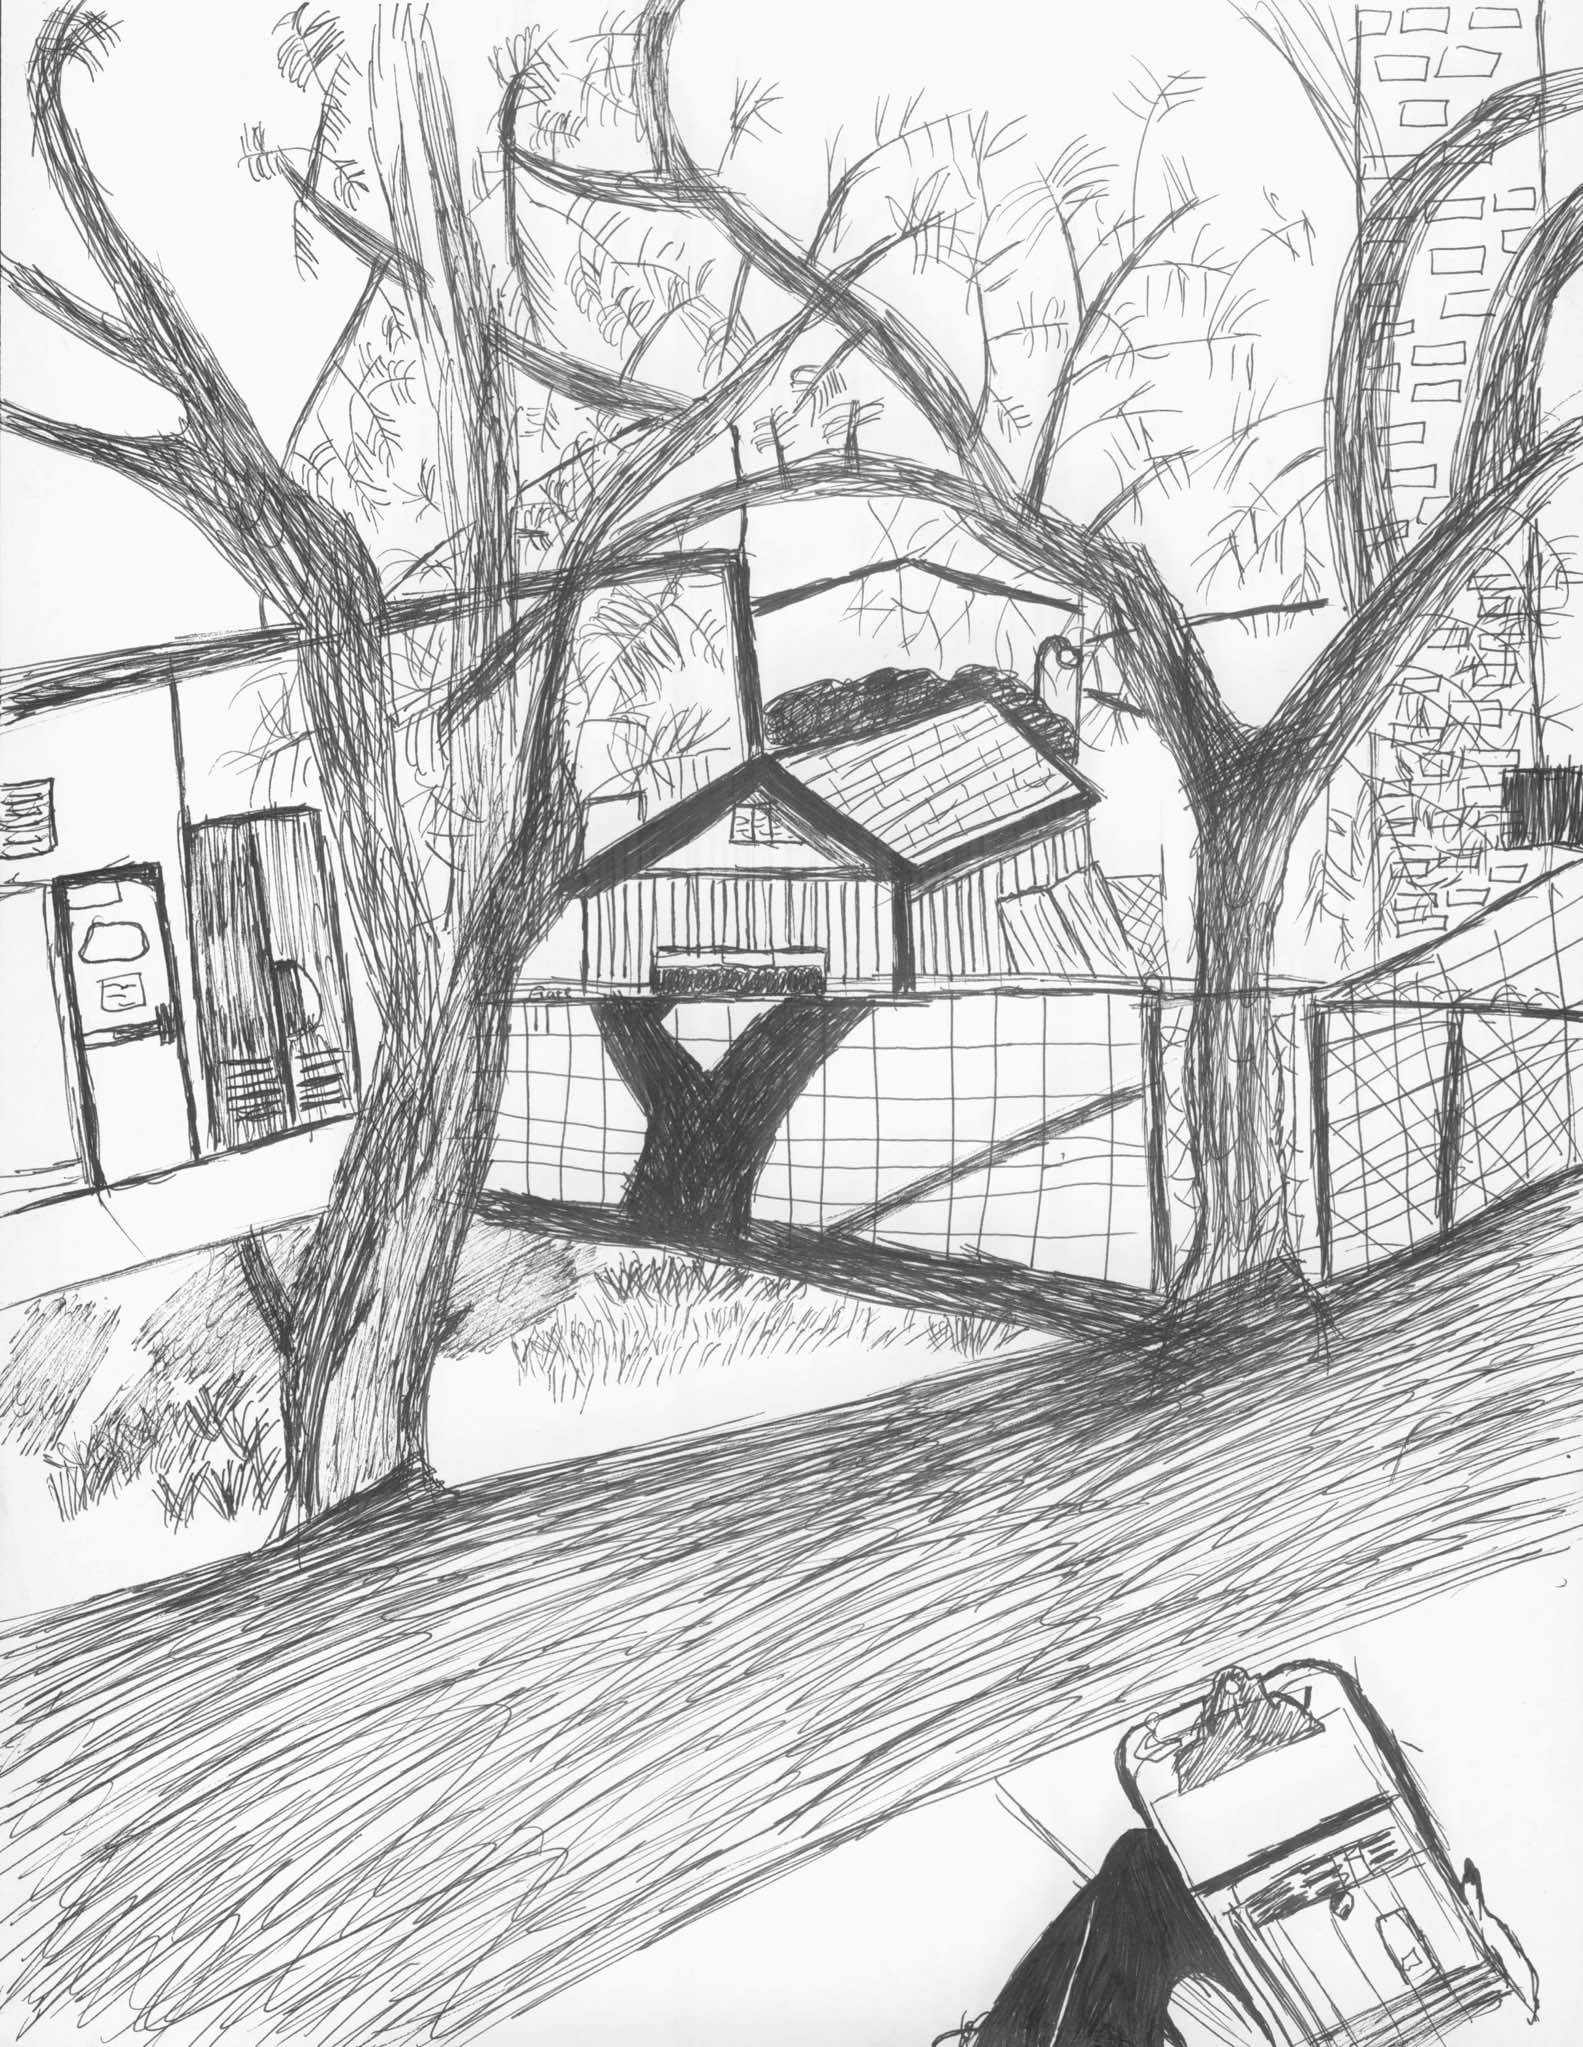 House Pencil Drawing at GetDrawings.com | Free for ...